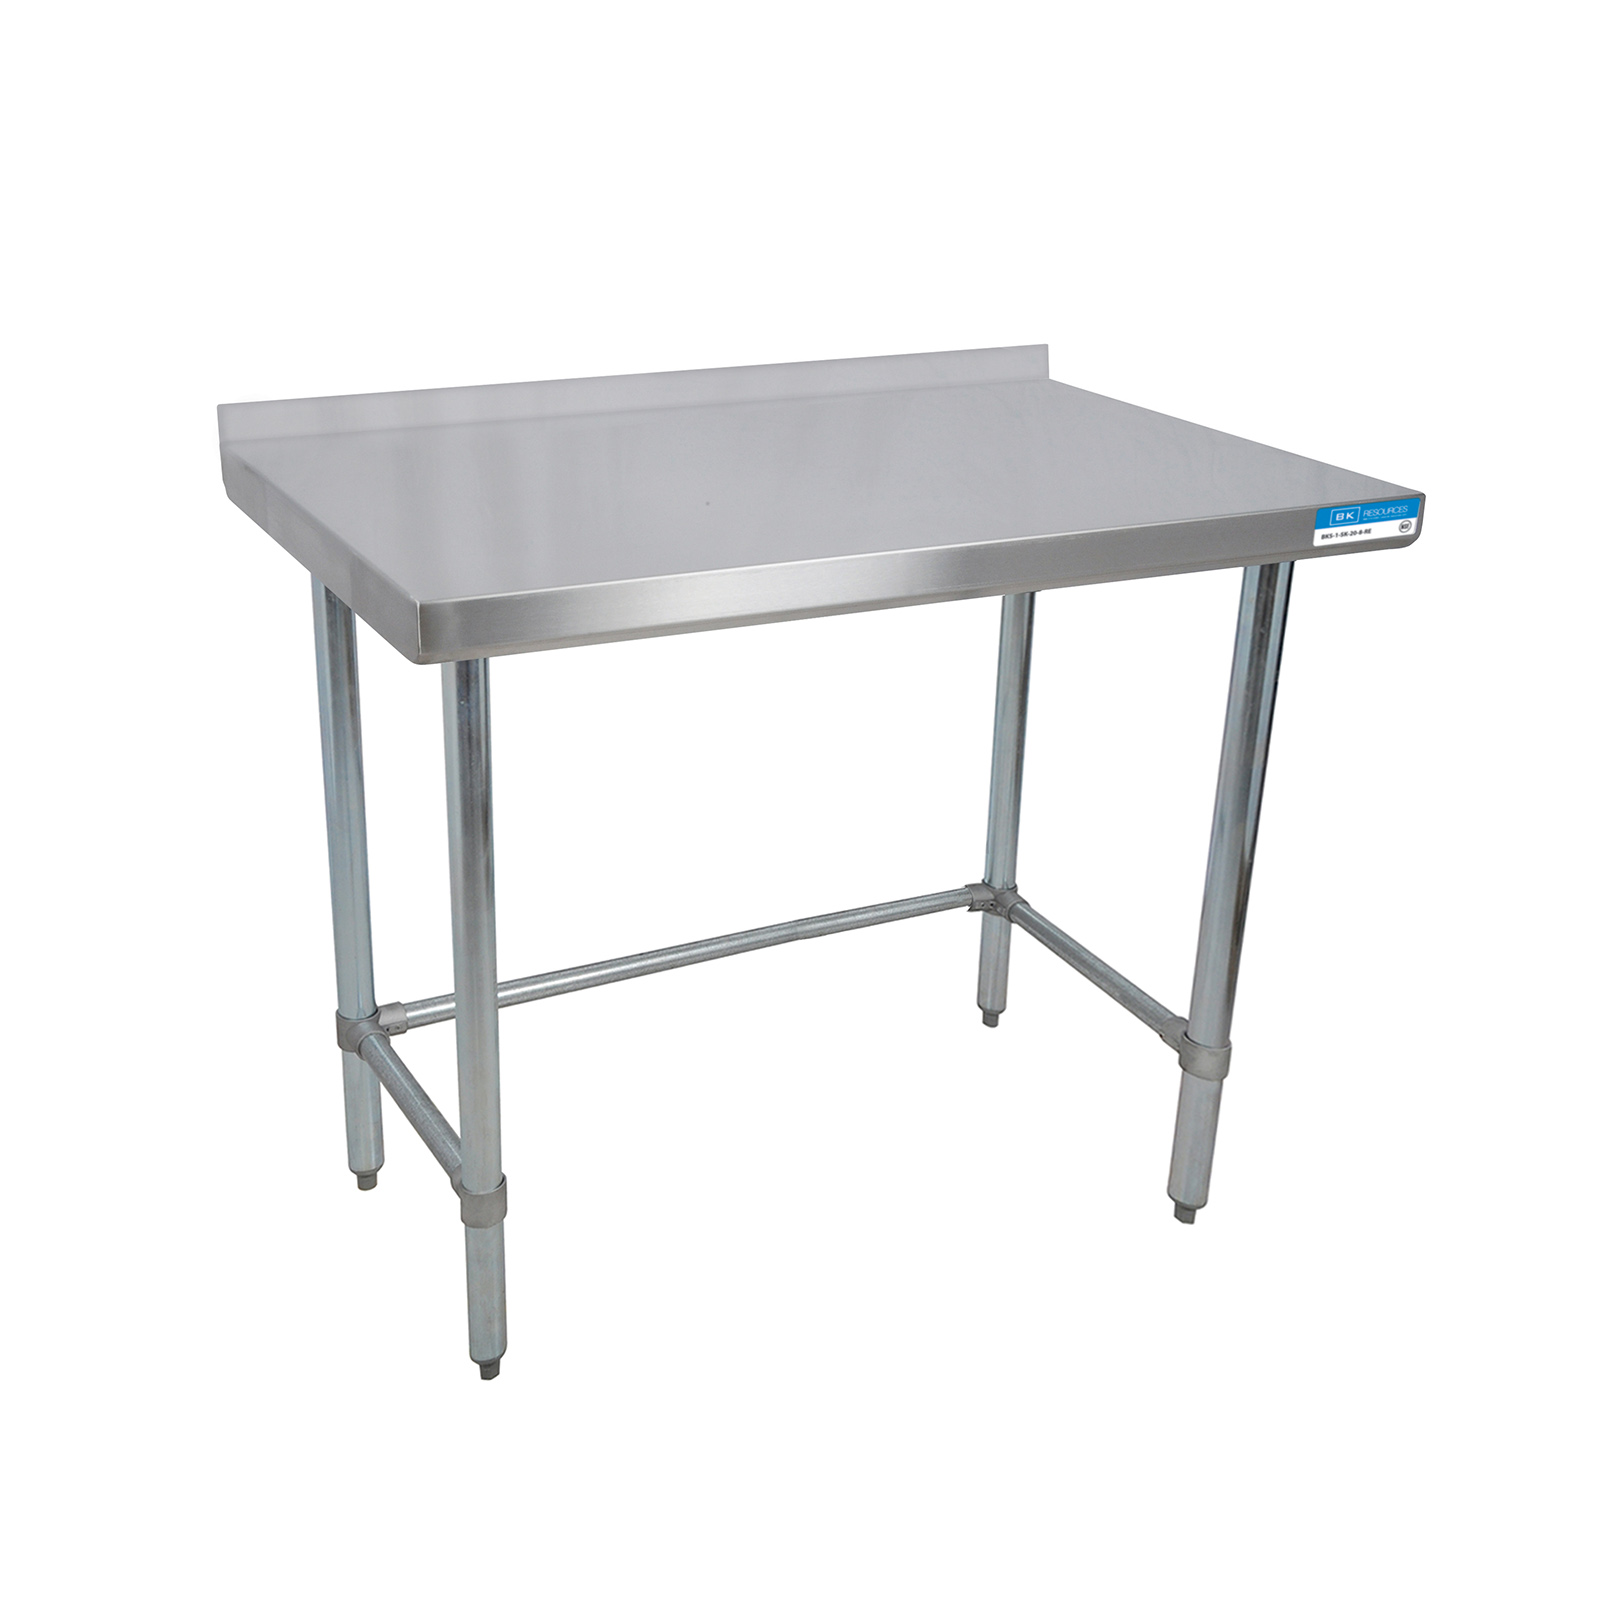 BK Resources SVTROB-1836 work table,  36